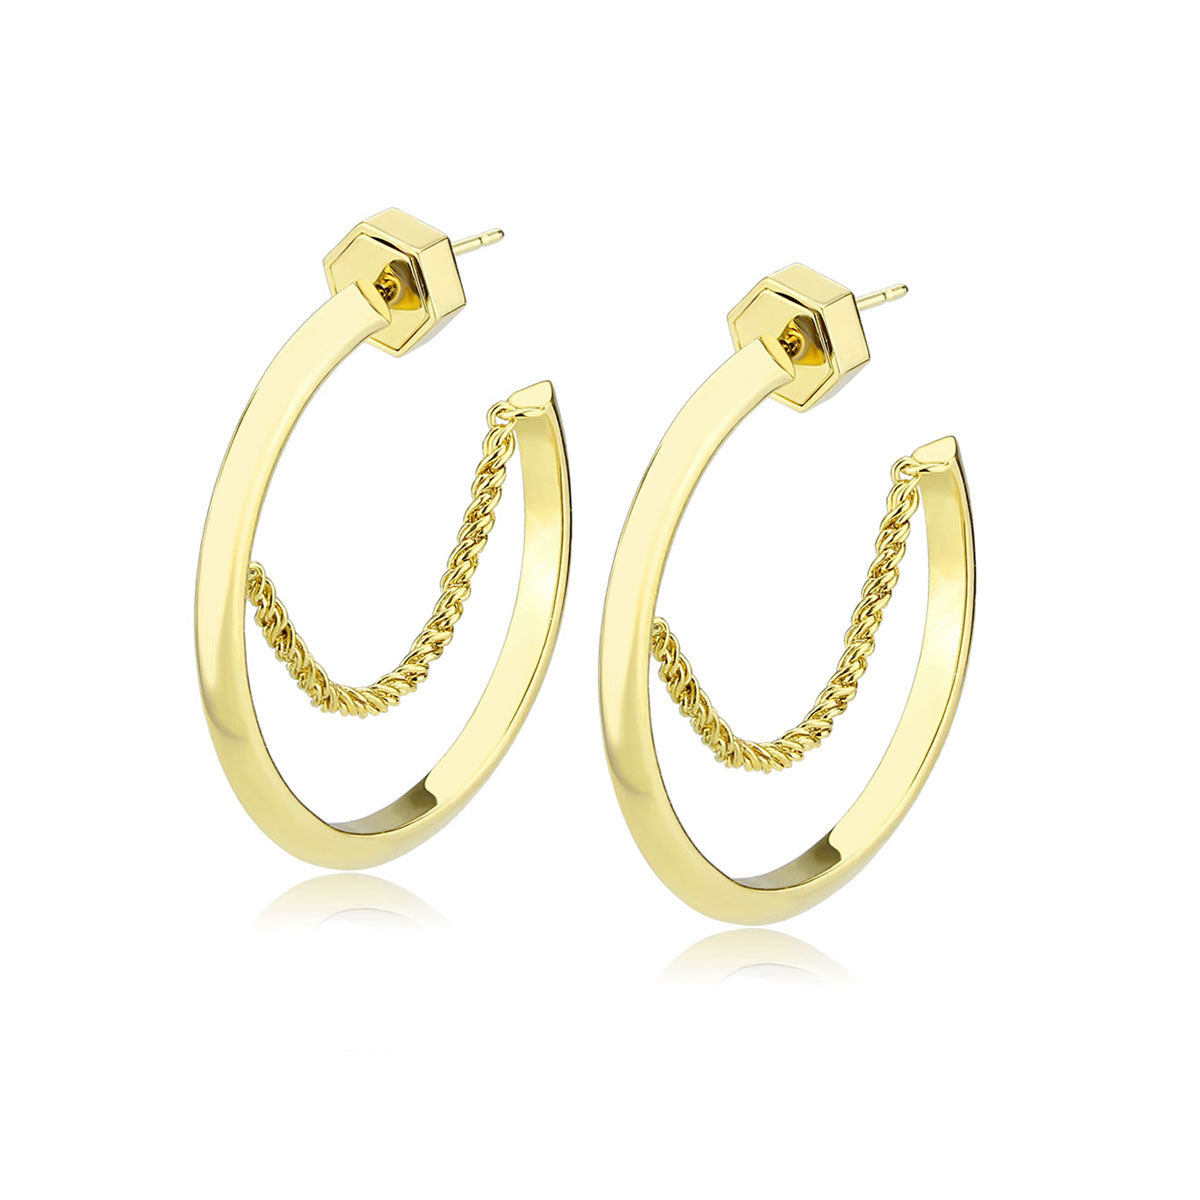 Chain Reaction Crescent Hoop Earrings - Gold